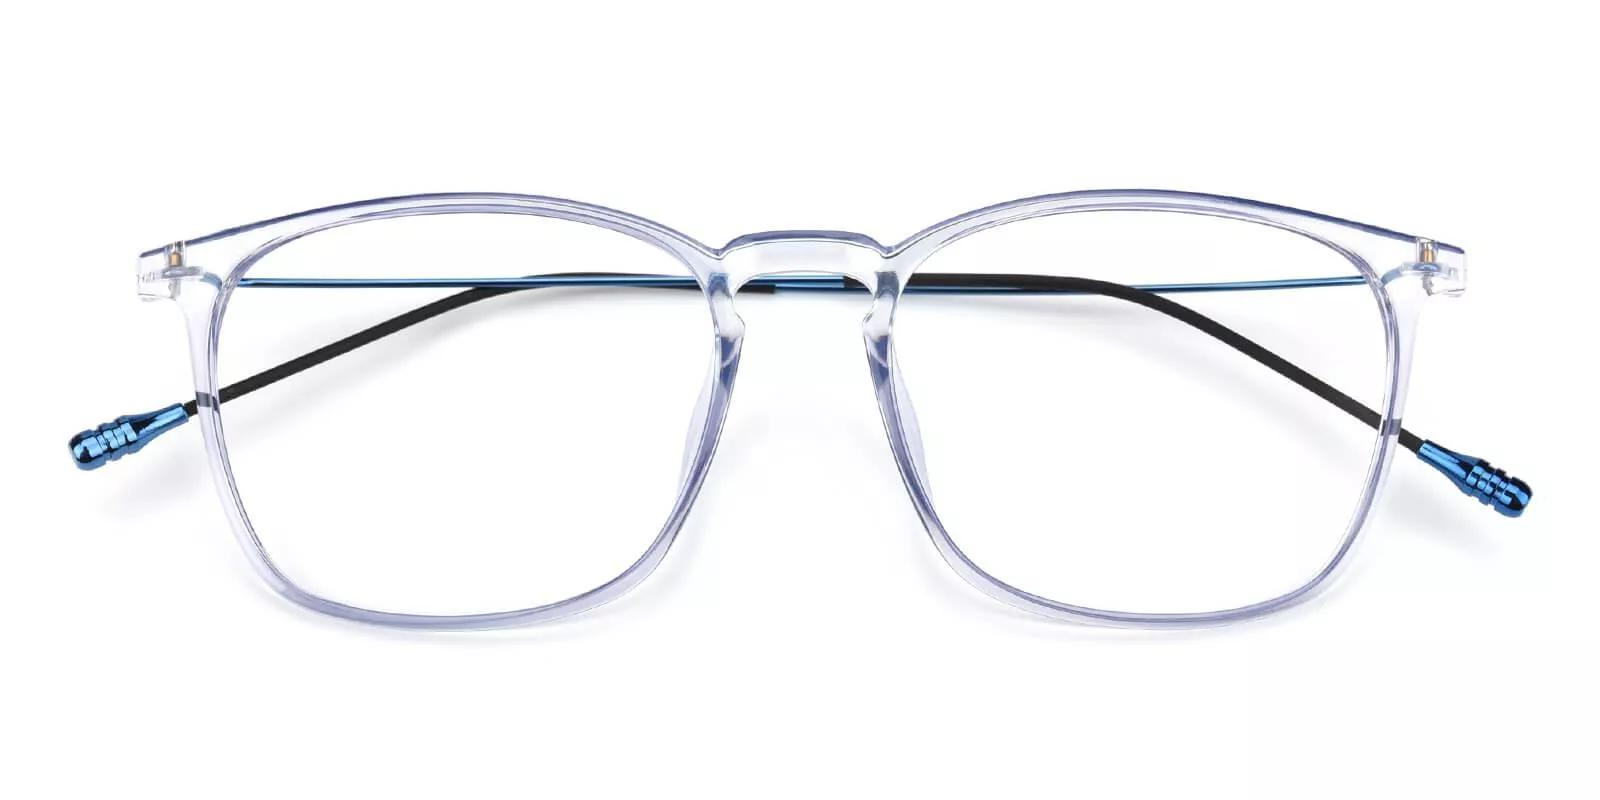 Norwalk Prescription Eyeglasses Blue Clear